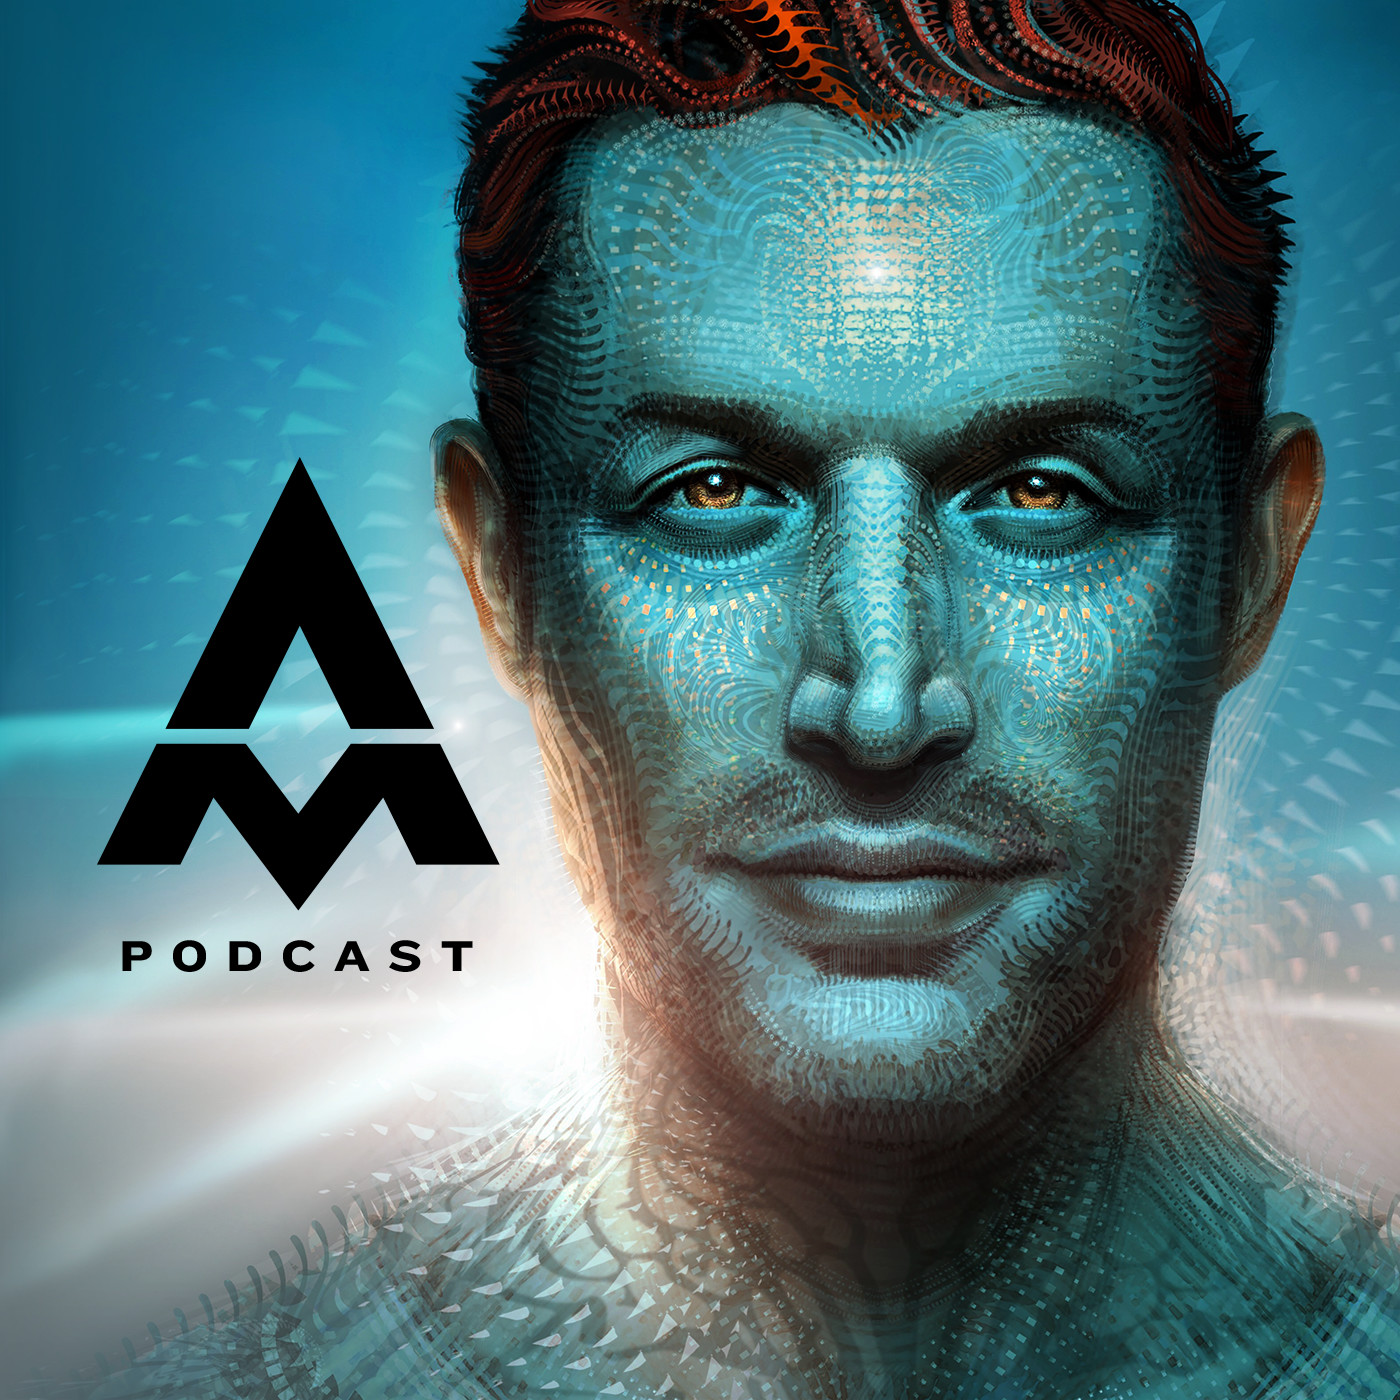 podcast thumbnail for 'Aubrey Marcus Podcast'